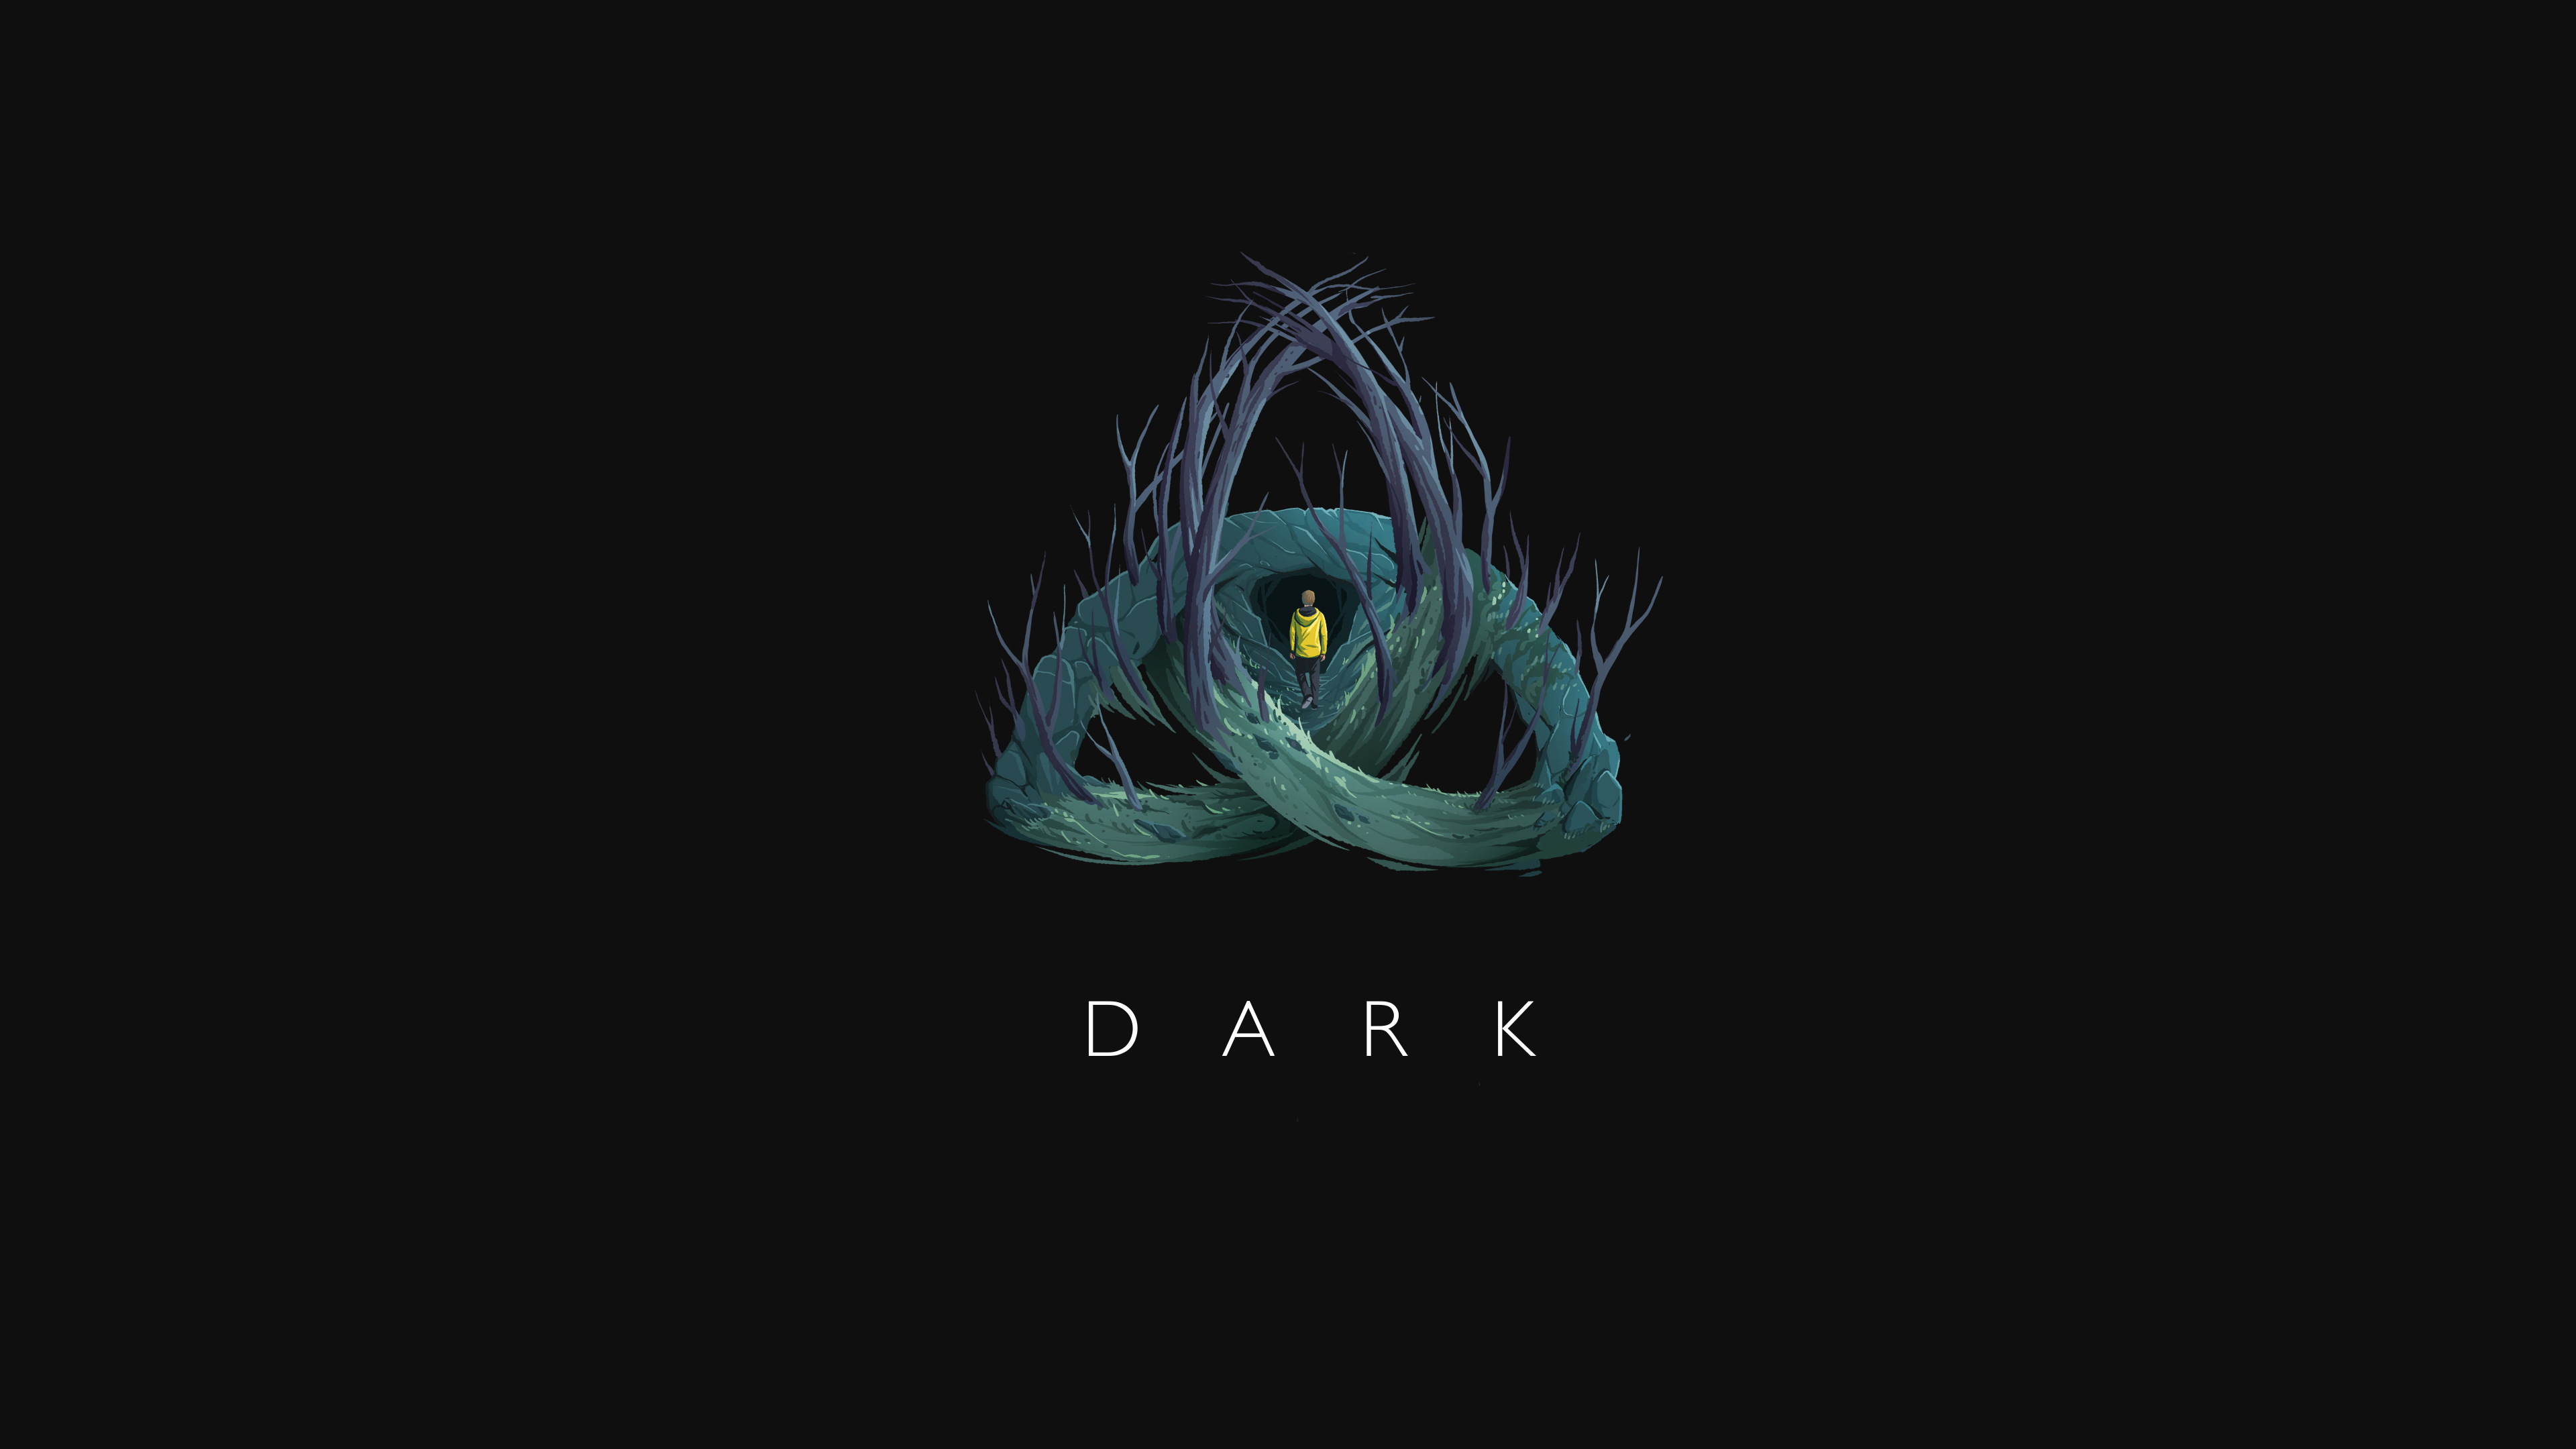 320x568 Dark Netflix Show 320x568 Resolution Wallpaper Hd Tv Series 4k Wallpapers Images Photos And Background